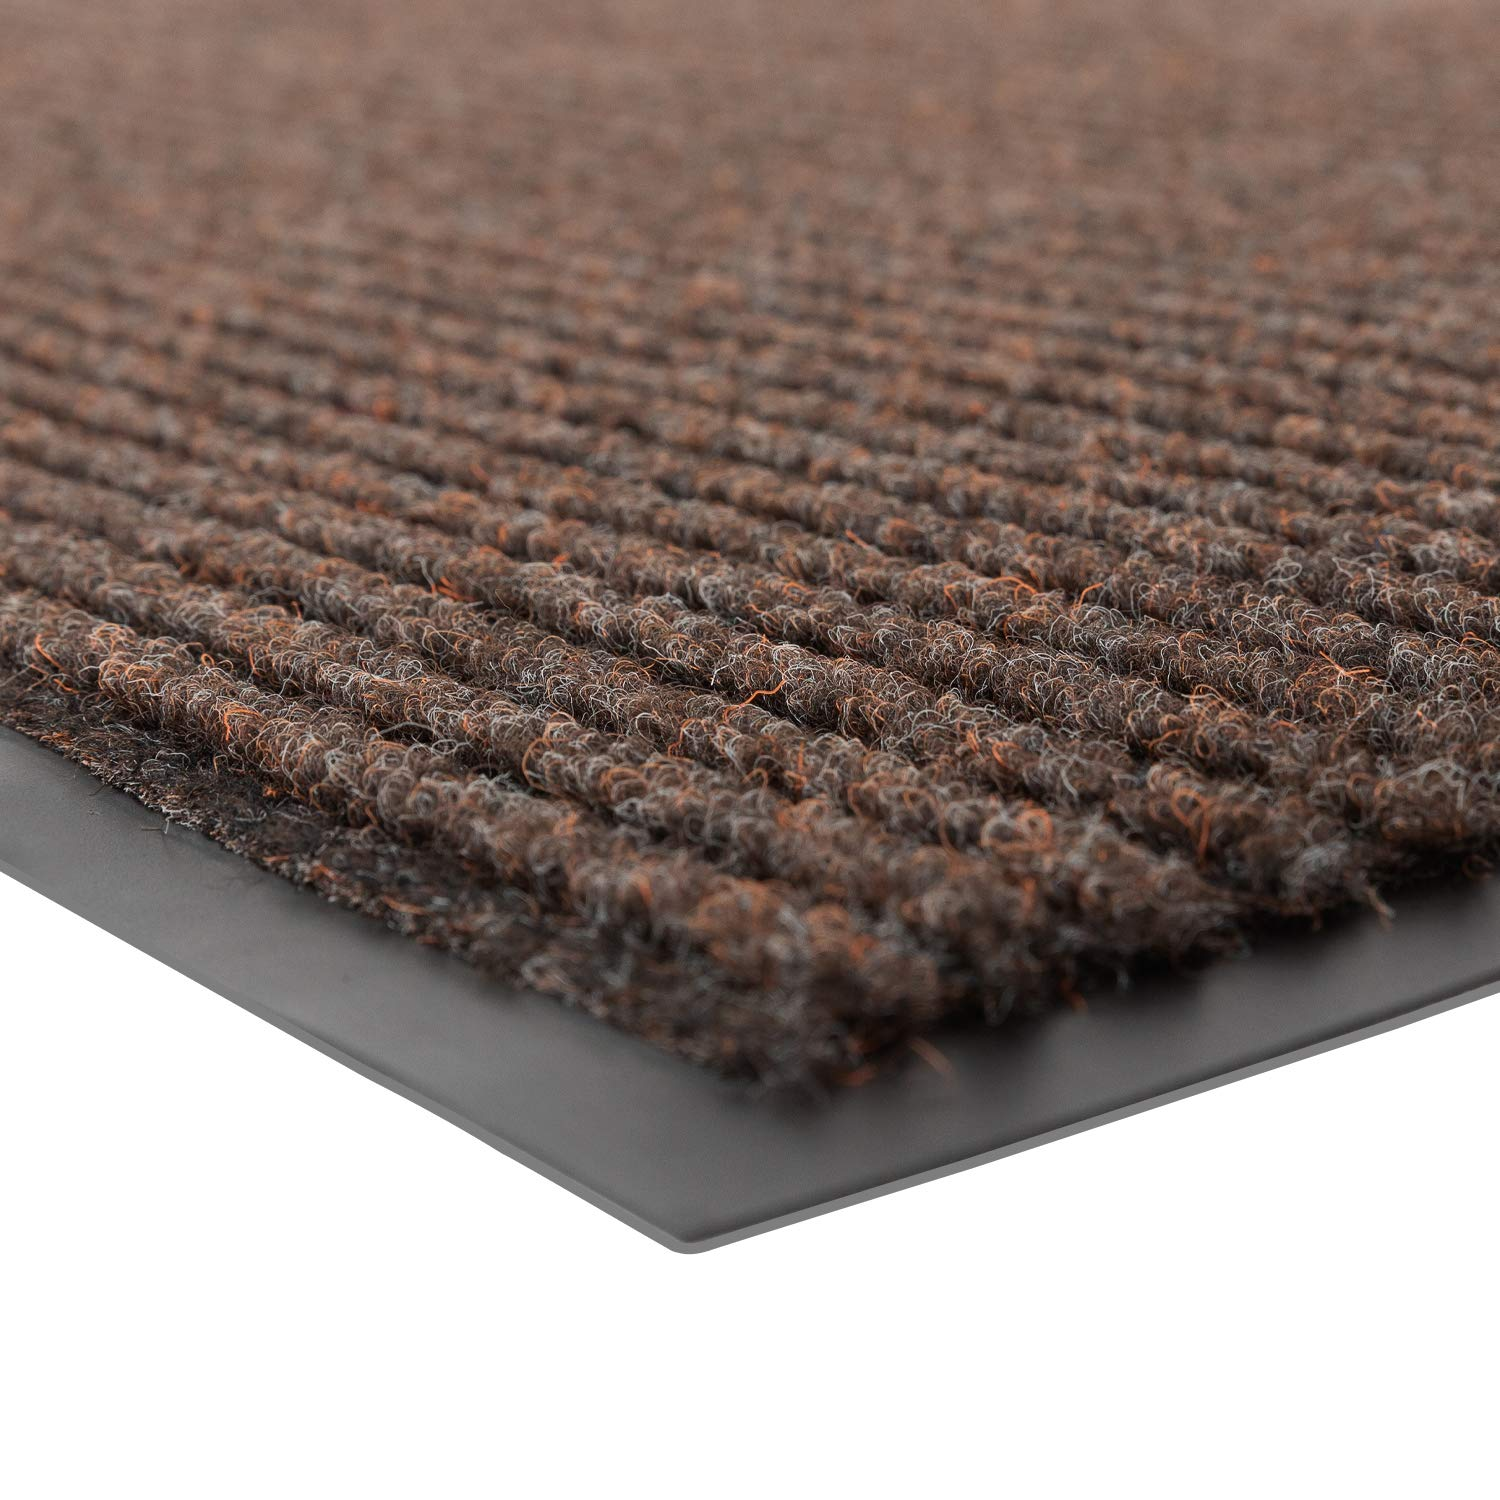 Notrax 109 Brush Step Entrance Mat, for Home or Office, 4' X 8' Brown